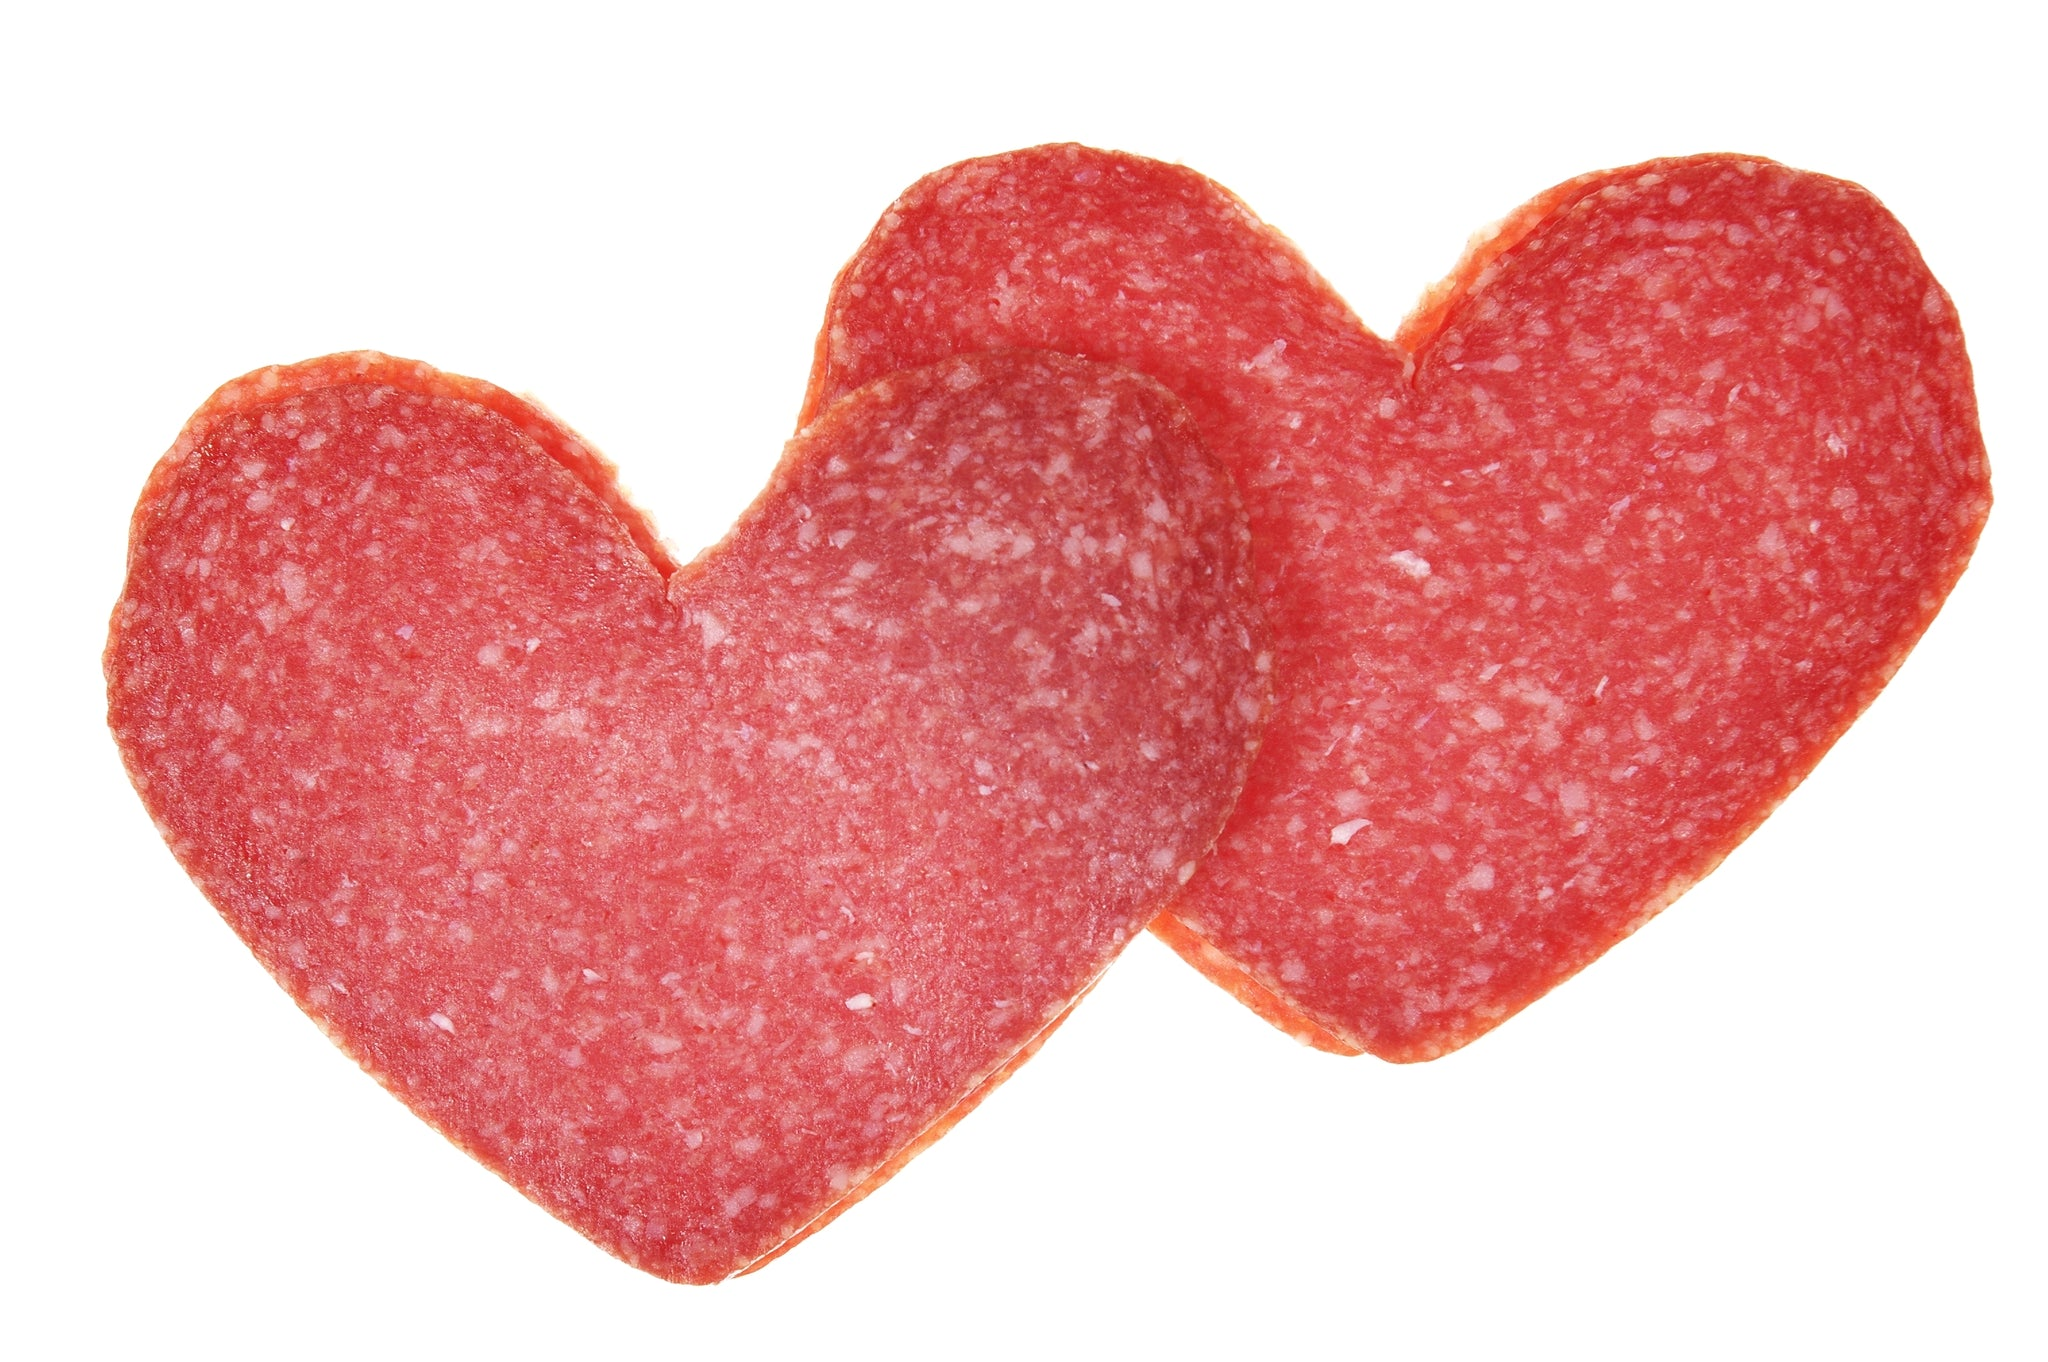 Heart Salami - 200g Sliced